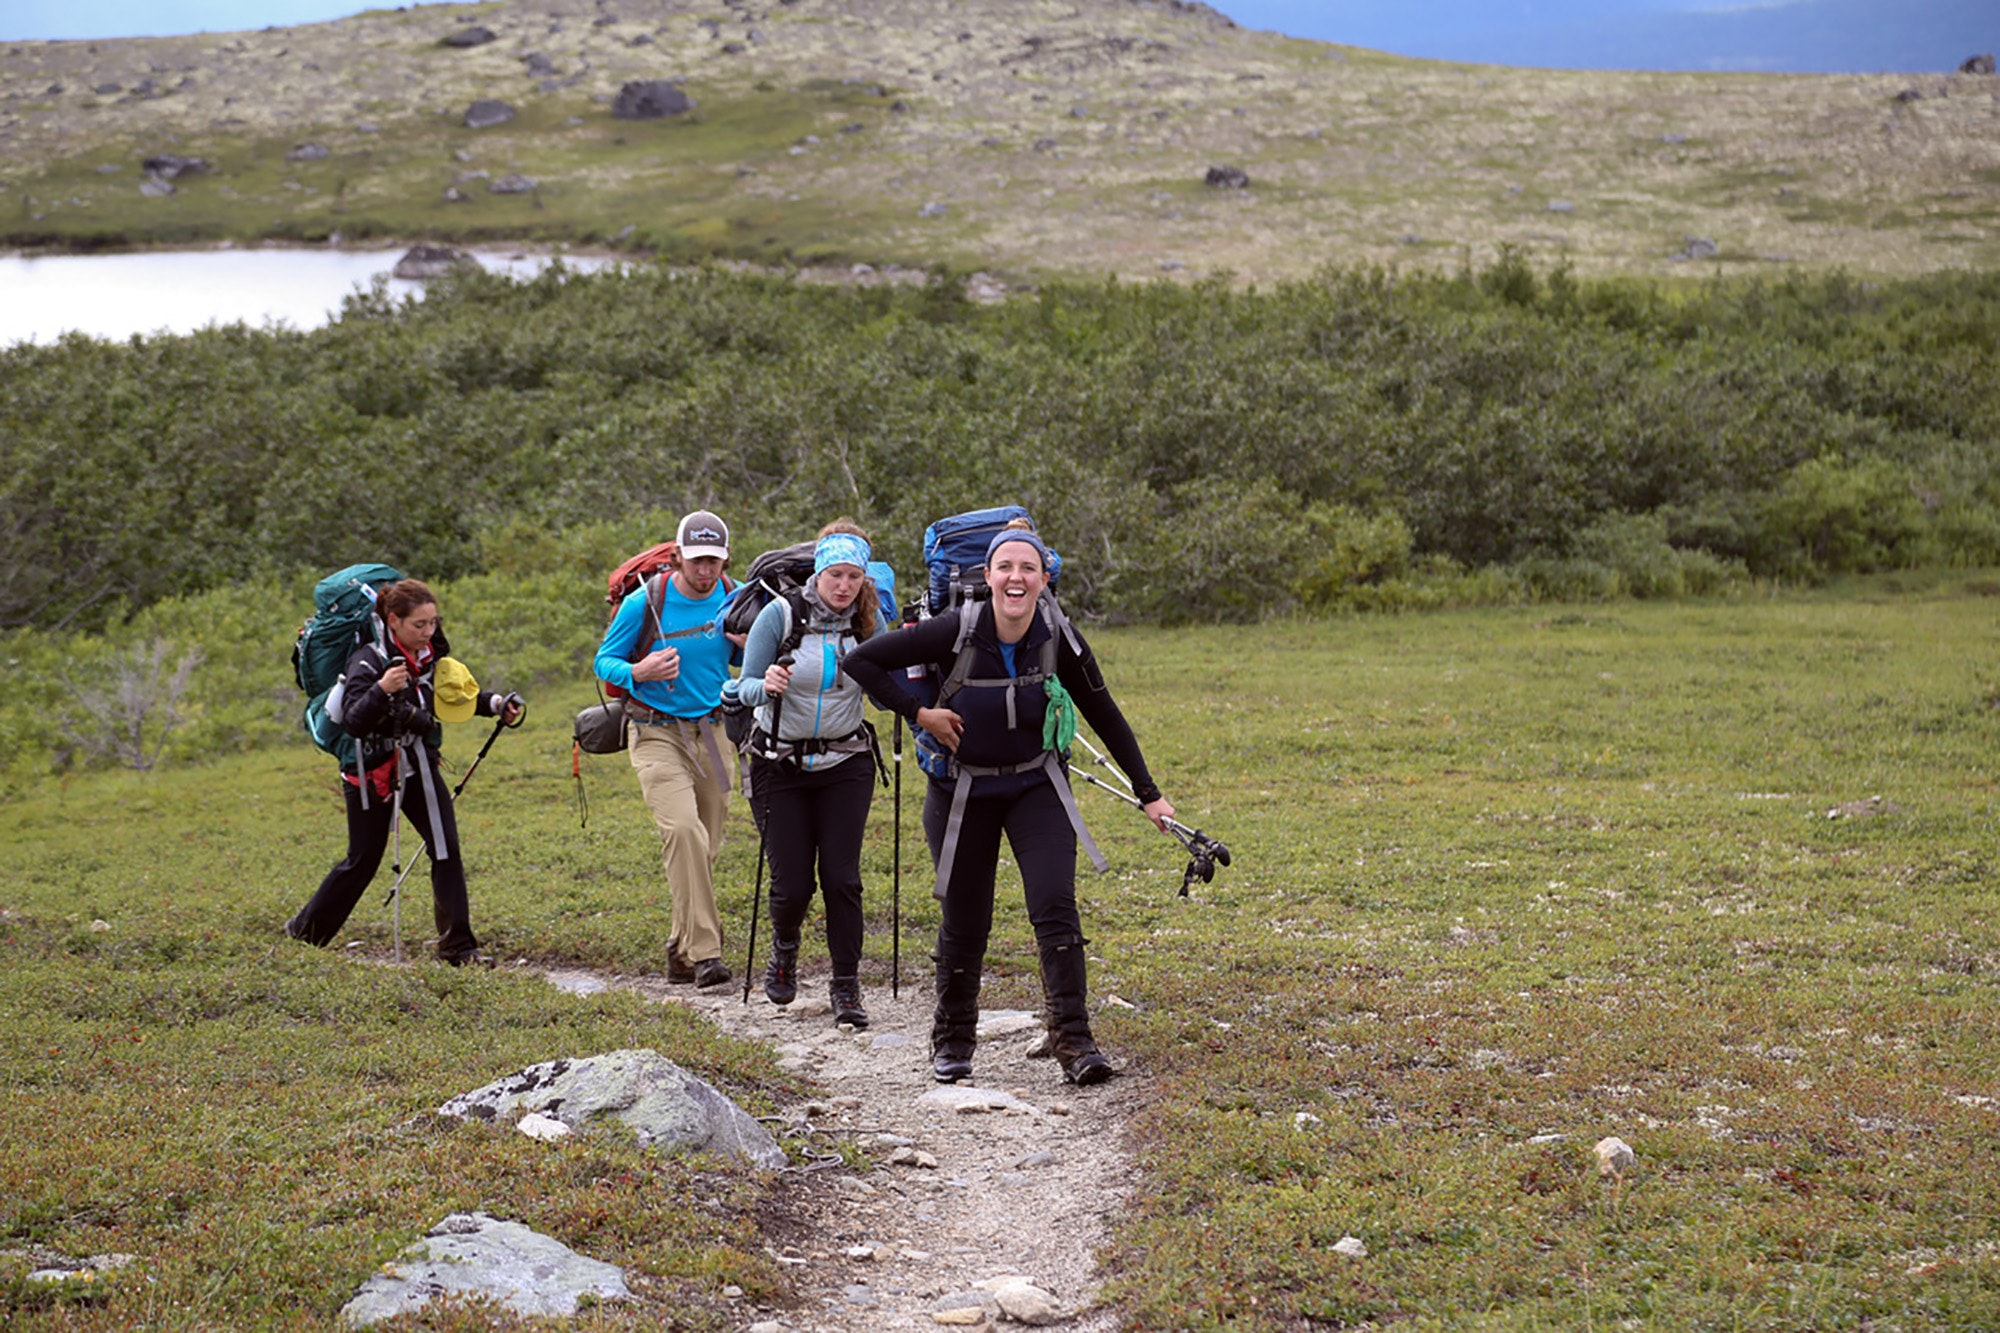 Companies like Discover Outdoors offer day trips, so you can test out a new adventure activity before booking a big trip.